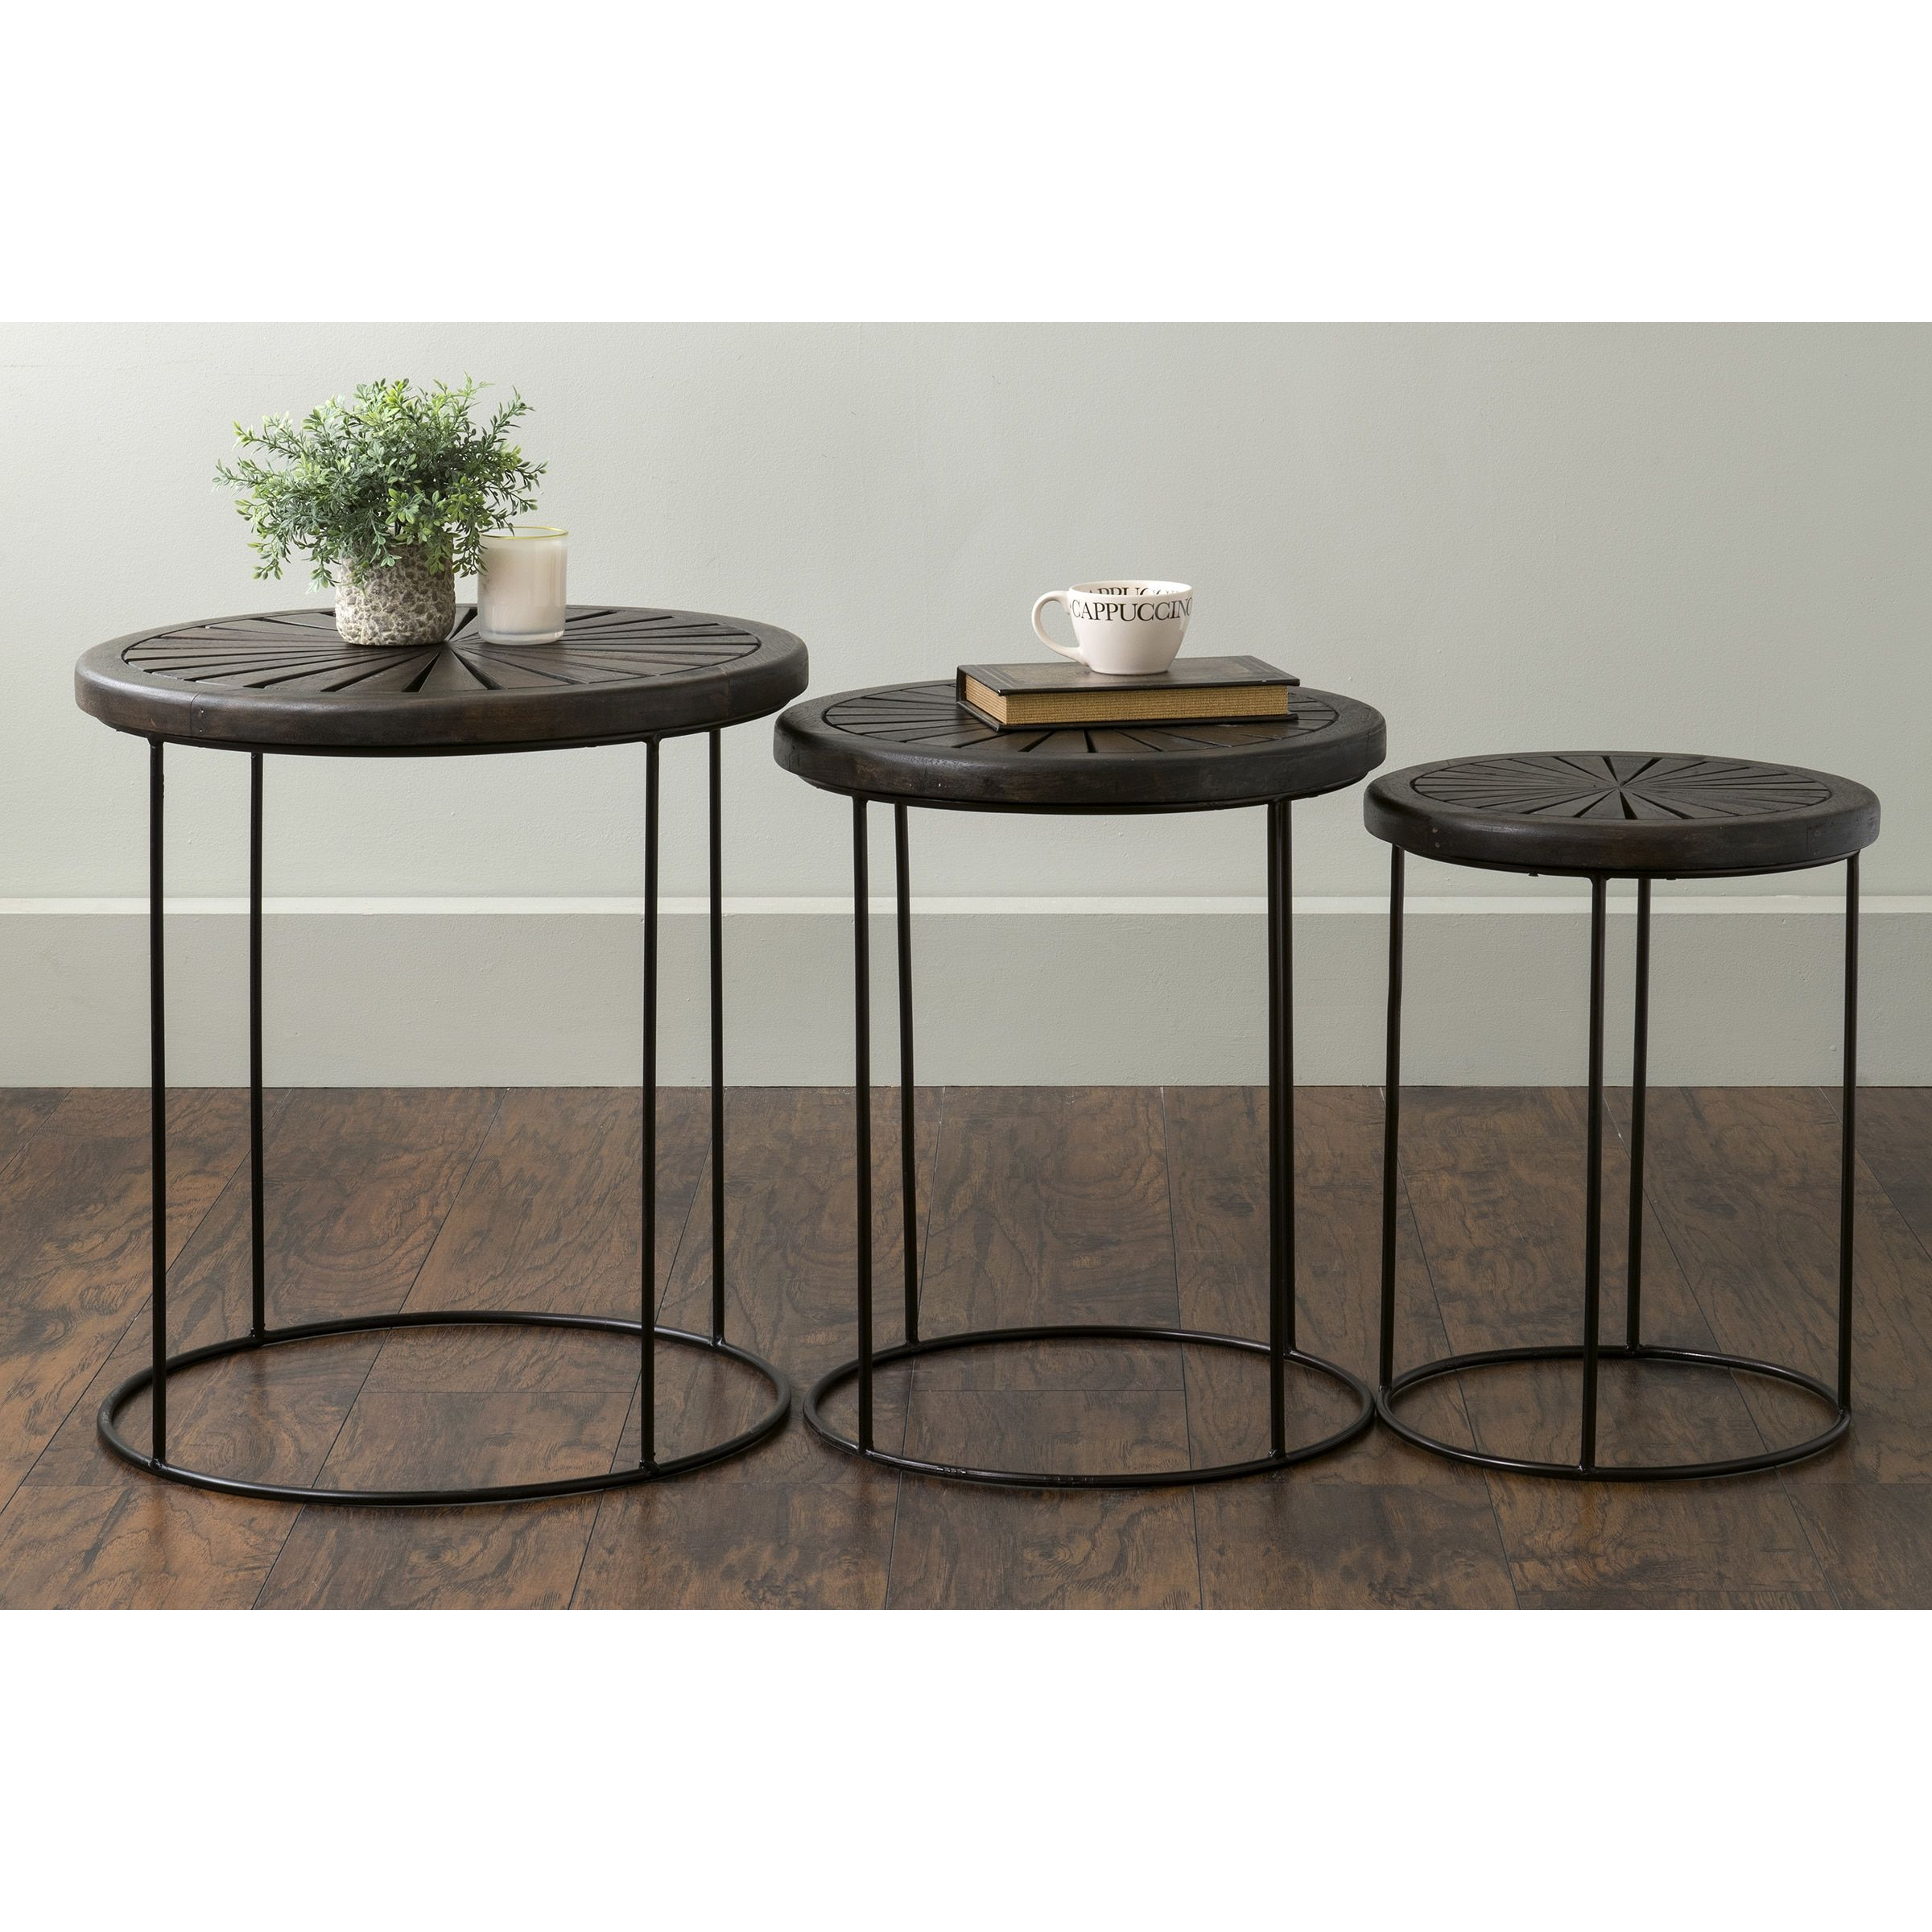 East At Main s Bartlett Brown Round Mango Wood Accent Nesting Table   Bartlett 510. East At Main s Bartlett Brown Round Mango Wood Accent Nesting